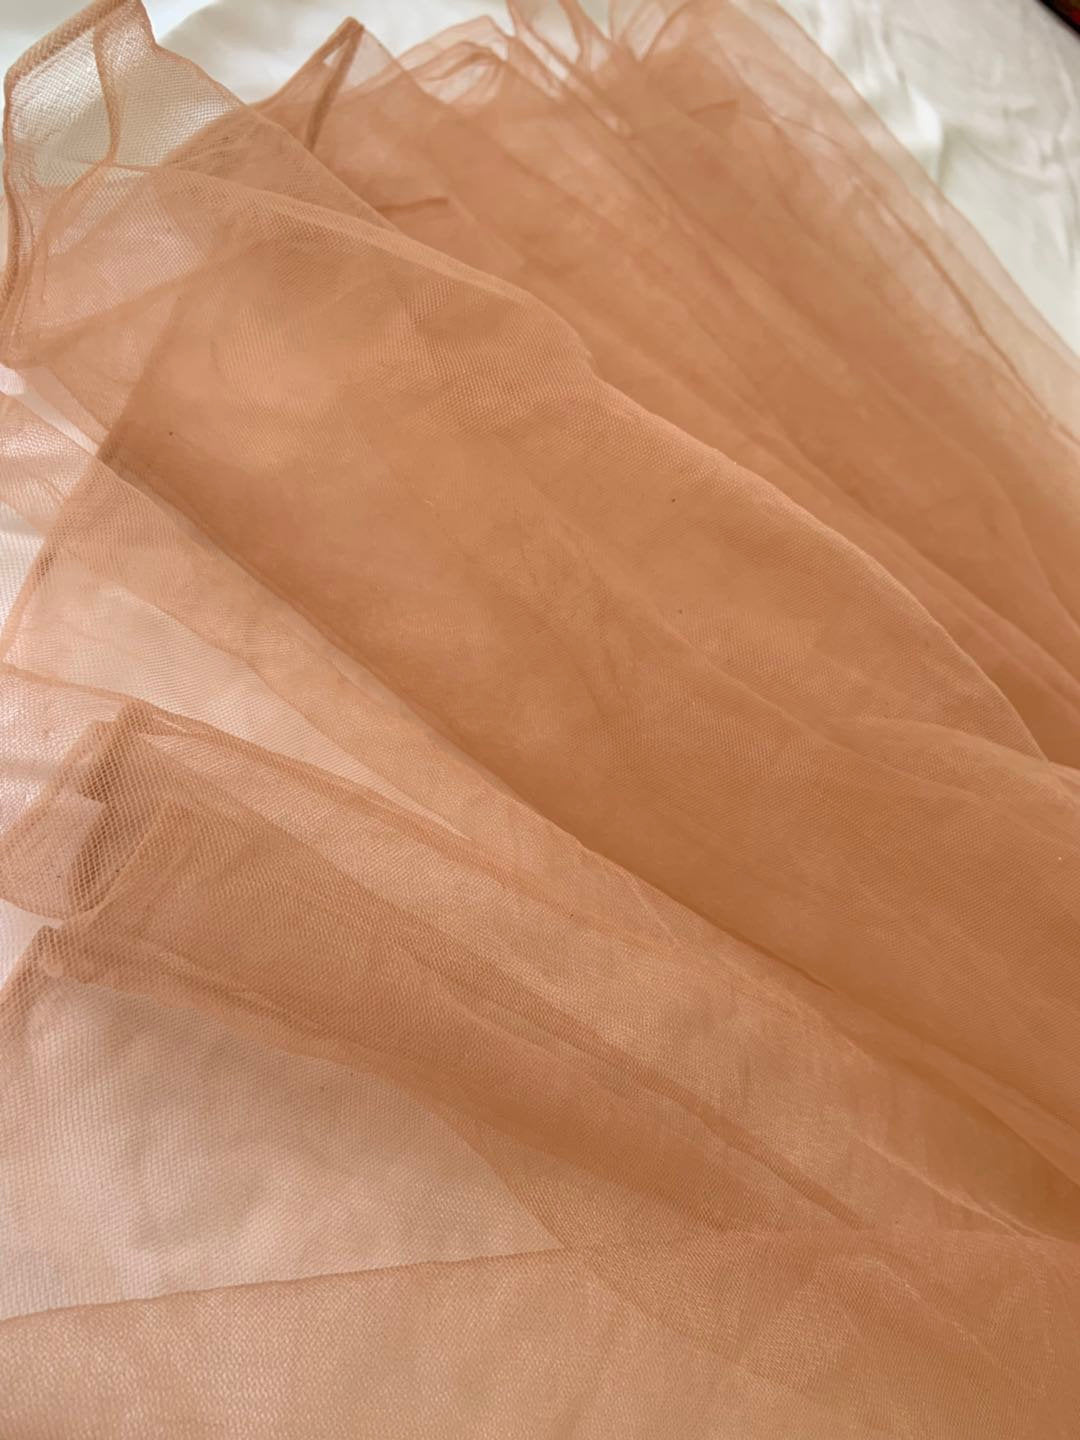 Dust pink fine tulle netting fabric, skin flesh color tulle for bridal veil, earth tone tutu mesh fabric,HYRSW49# 30+ colors